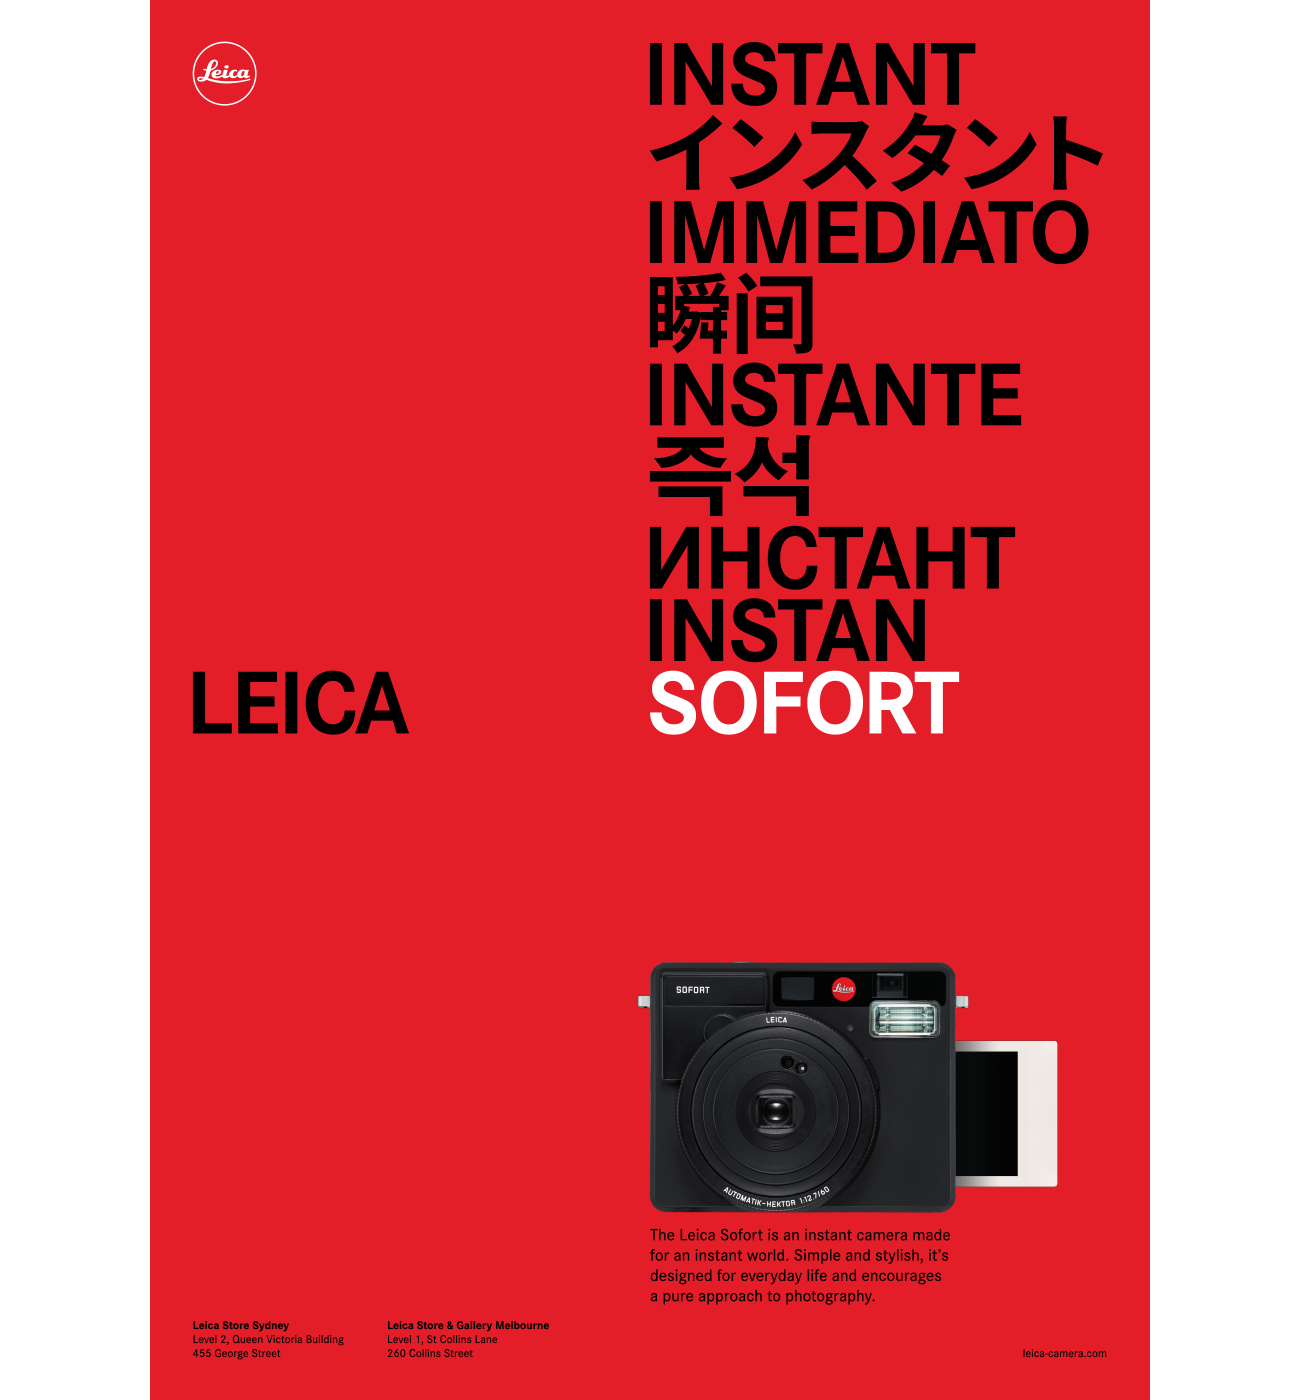 lost-art-leica-sofort-campaign-chris-hopkins-advertising-poster-1